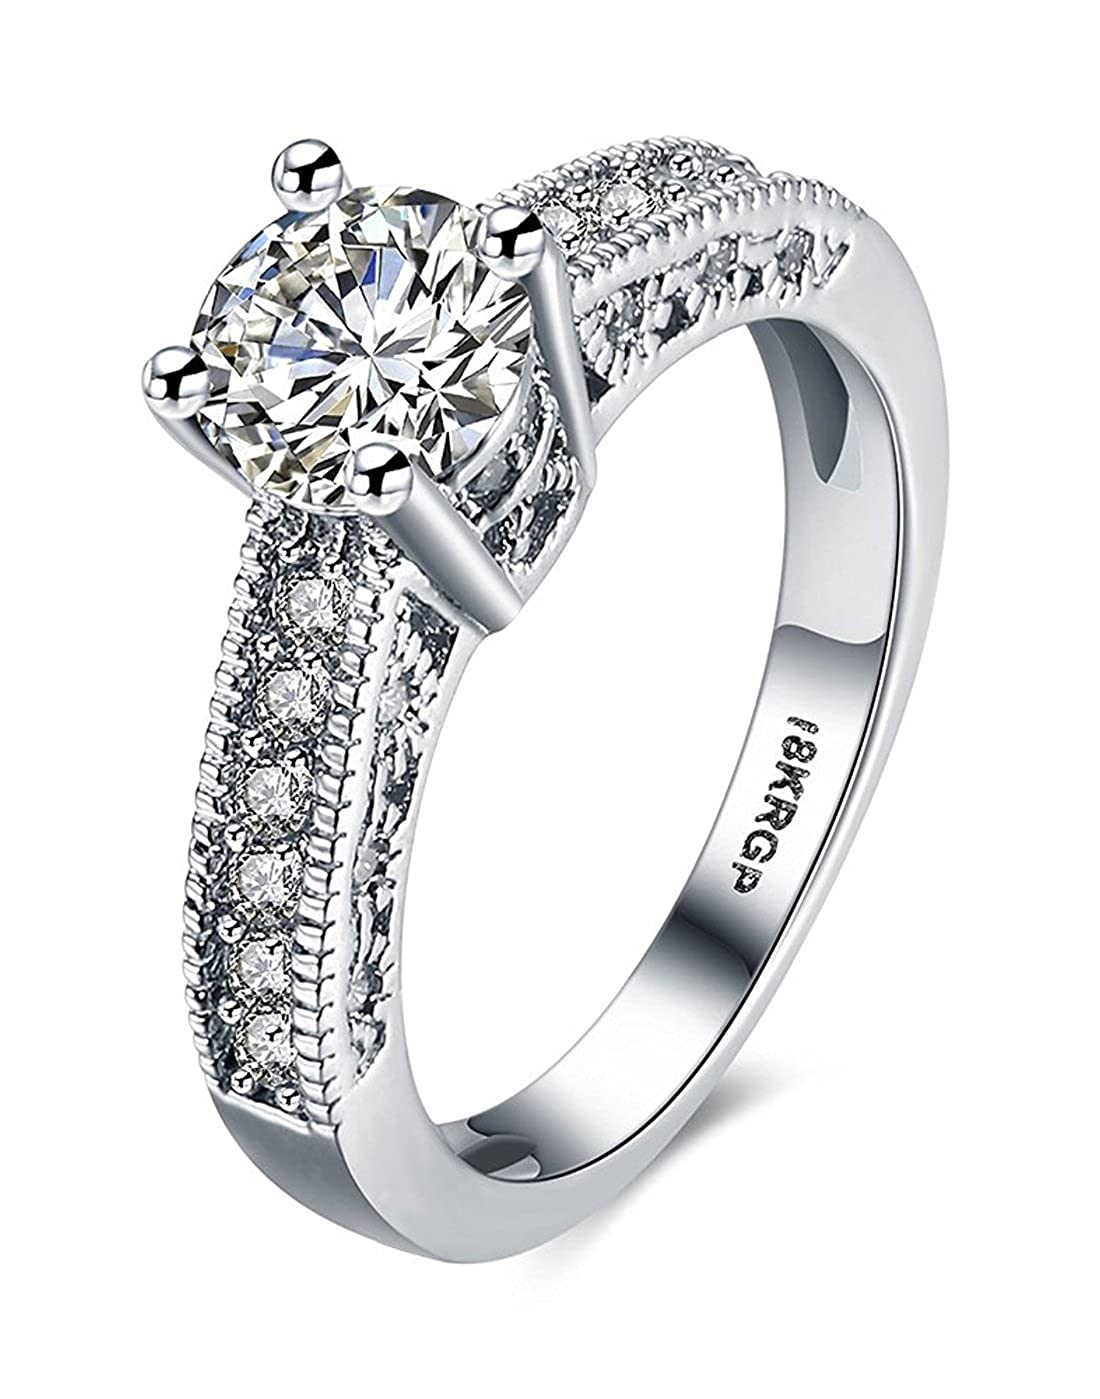 karatcart Platinum Plated Austrian Crystal Ring for Women(Silver)